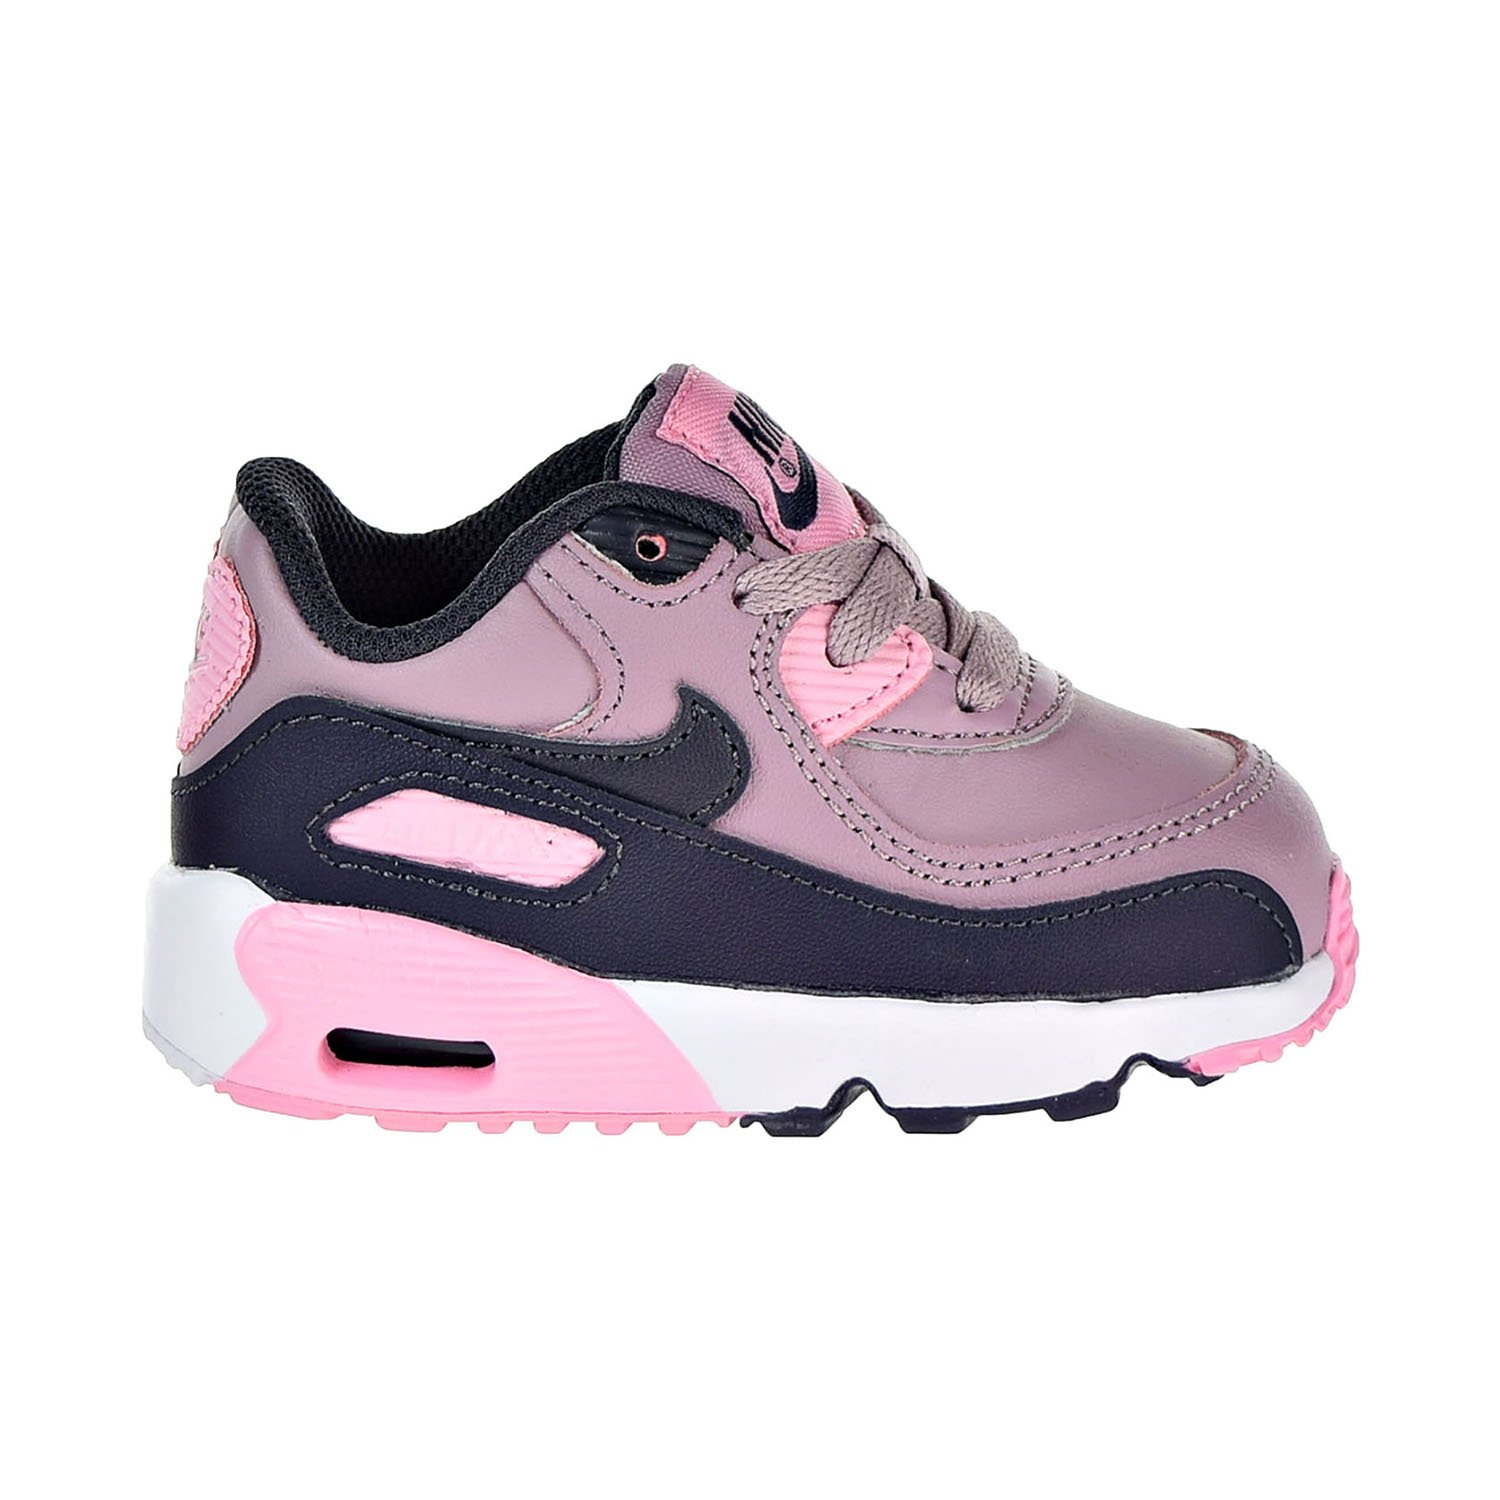 uk availability 6d3ae f6072 Amazon.com   NIKE Air Max 90 Leather Toddler s Shoes Elemental Rose  833379-602   Sneakers